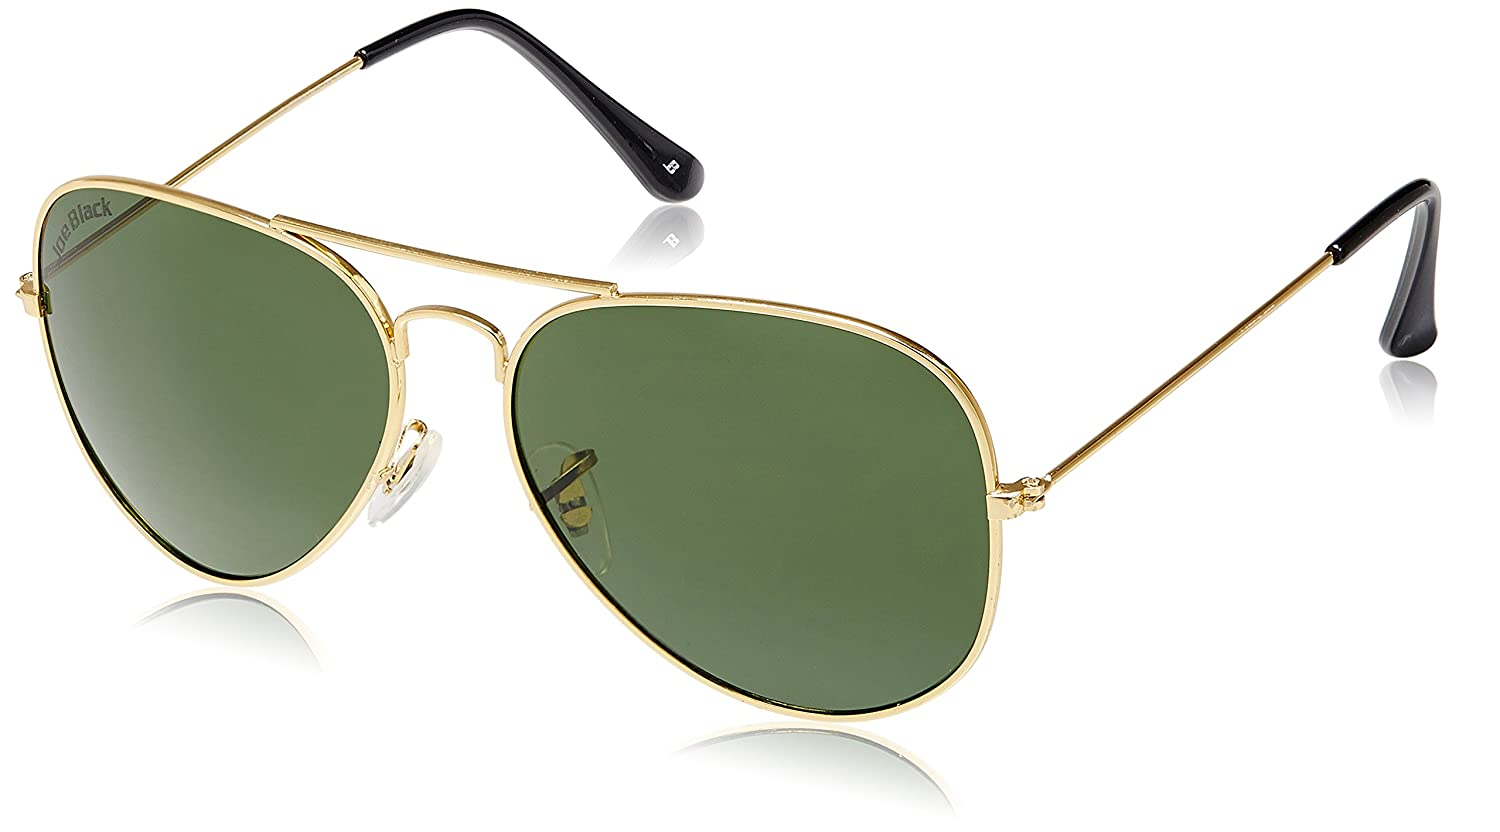 Deals on Joe Black Aviator Sunglasses